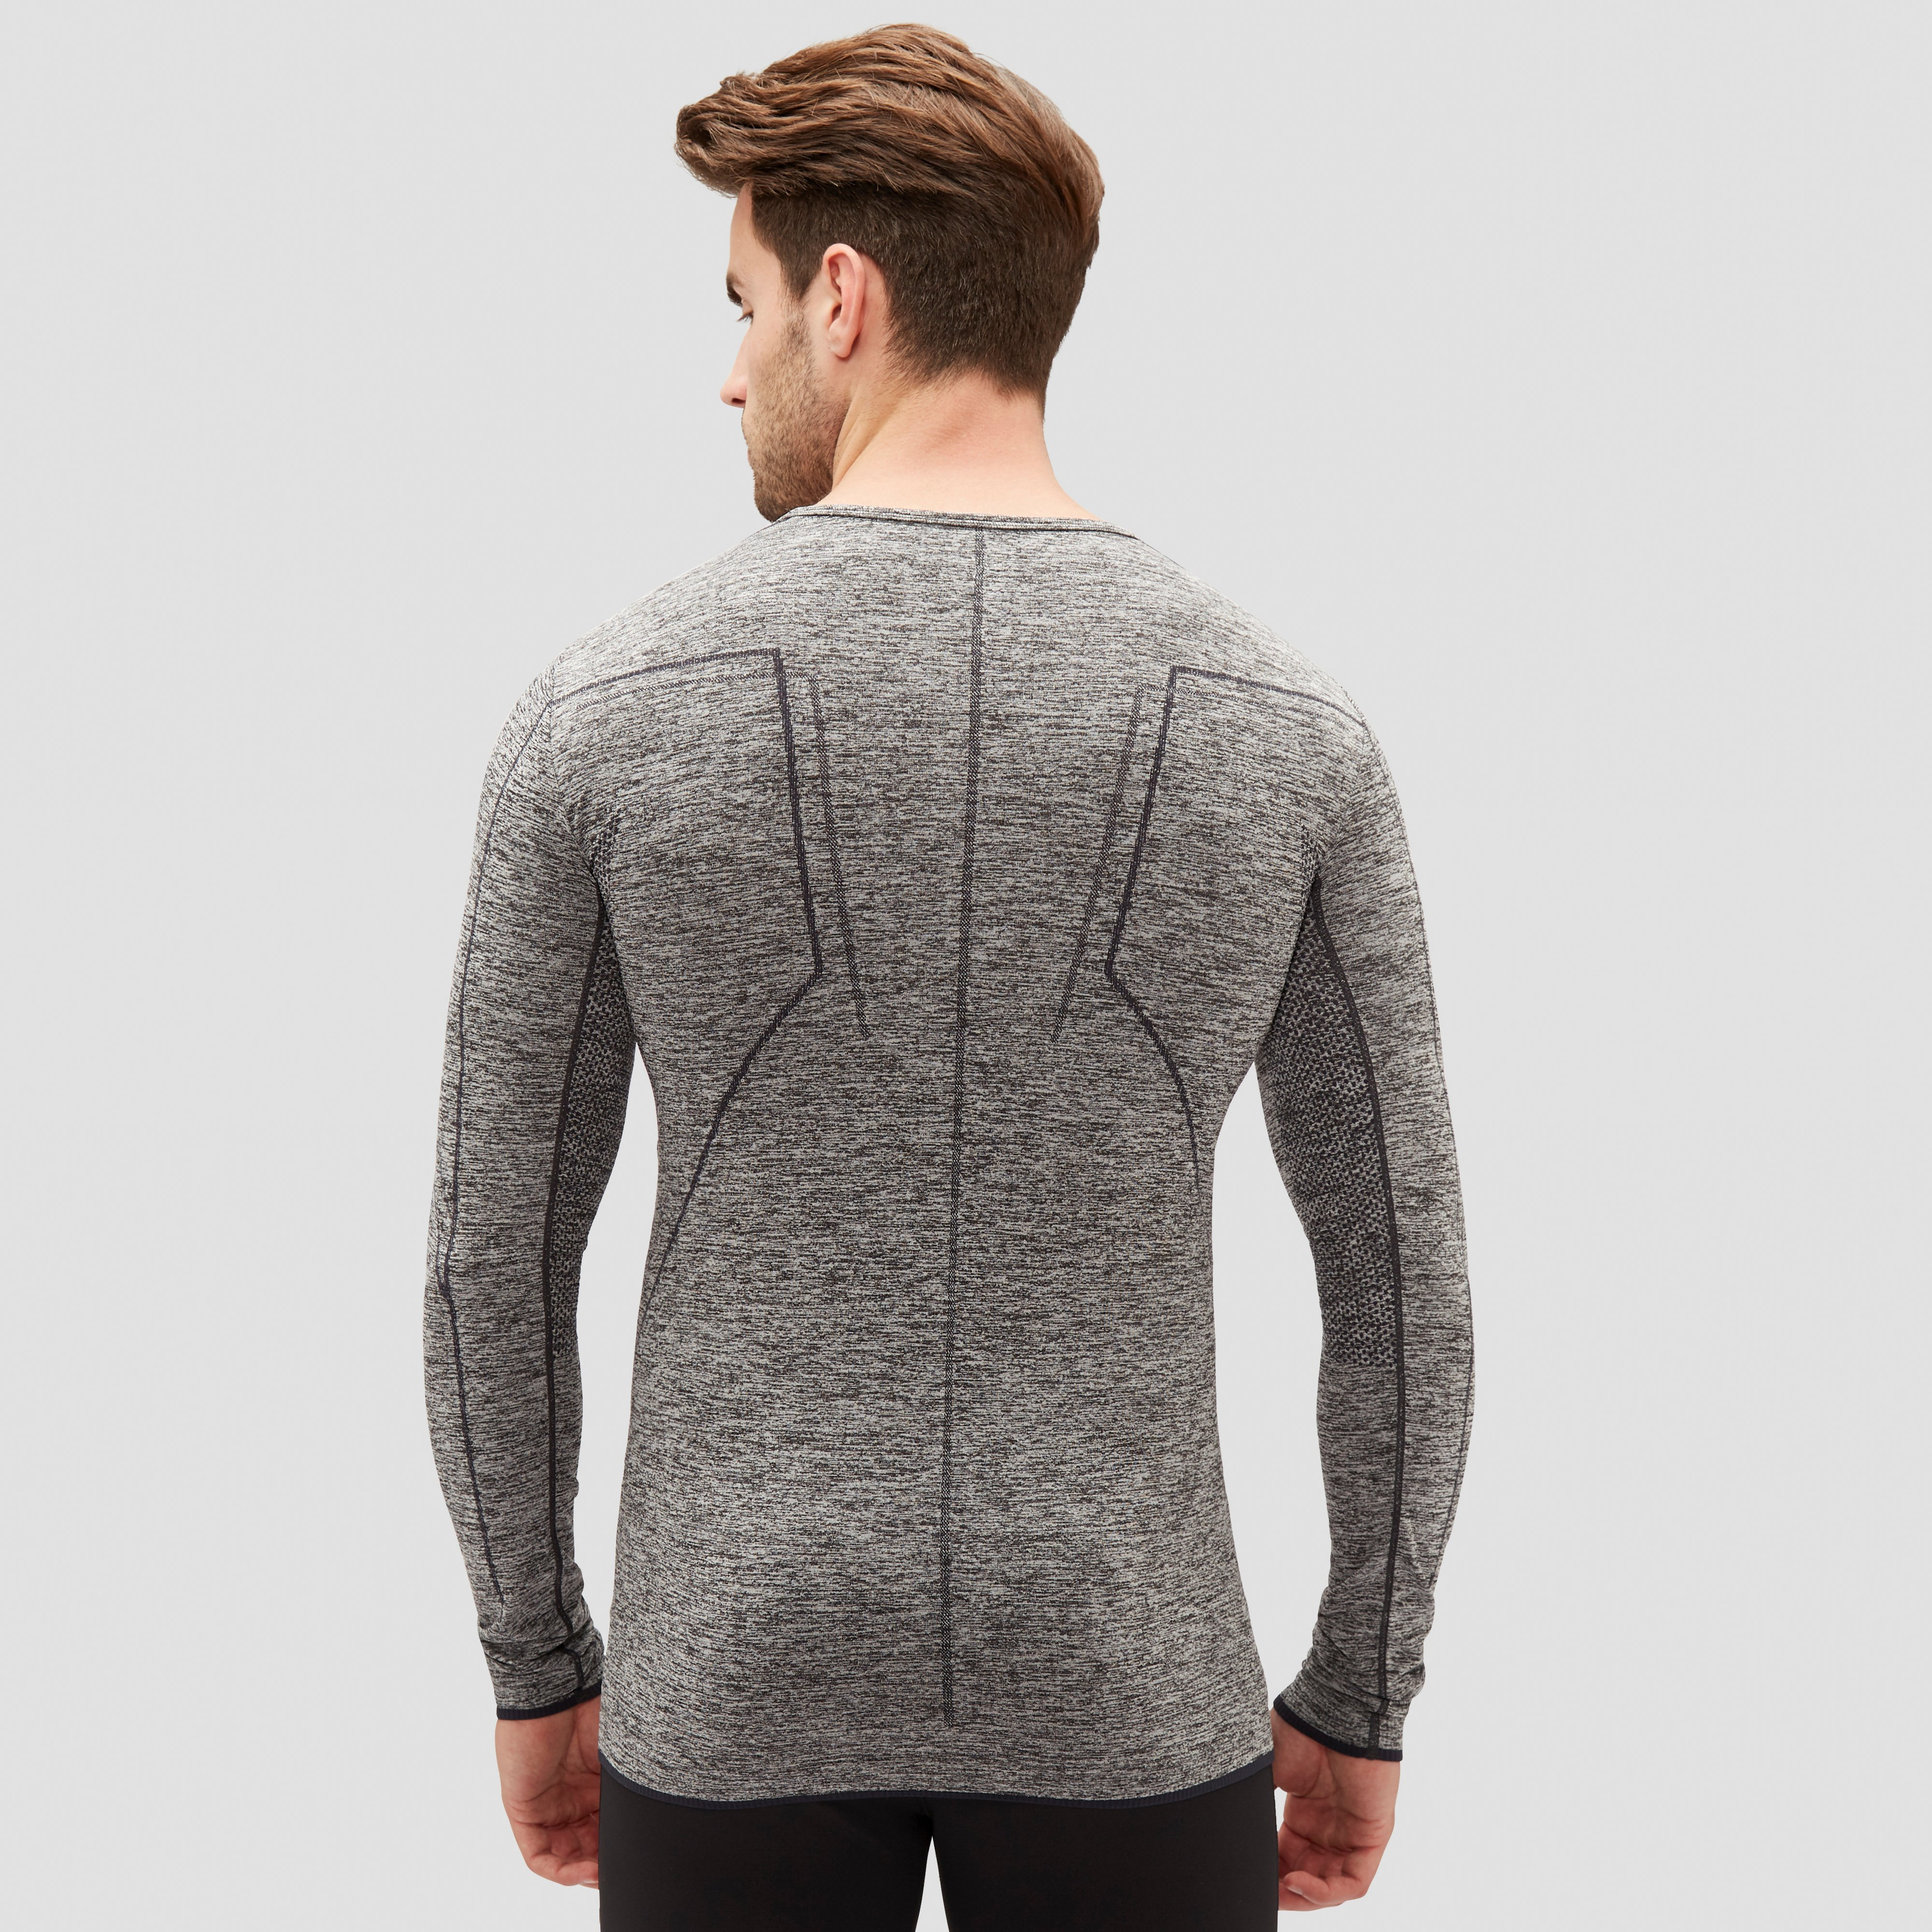 CRAFT ACTIVE COMFORT THERMOSHIRT GRIJS HEREN